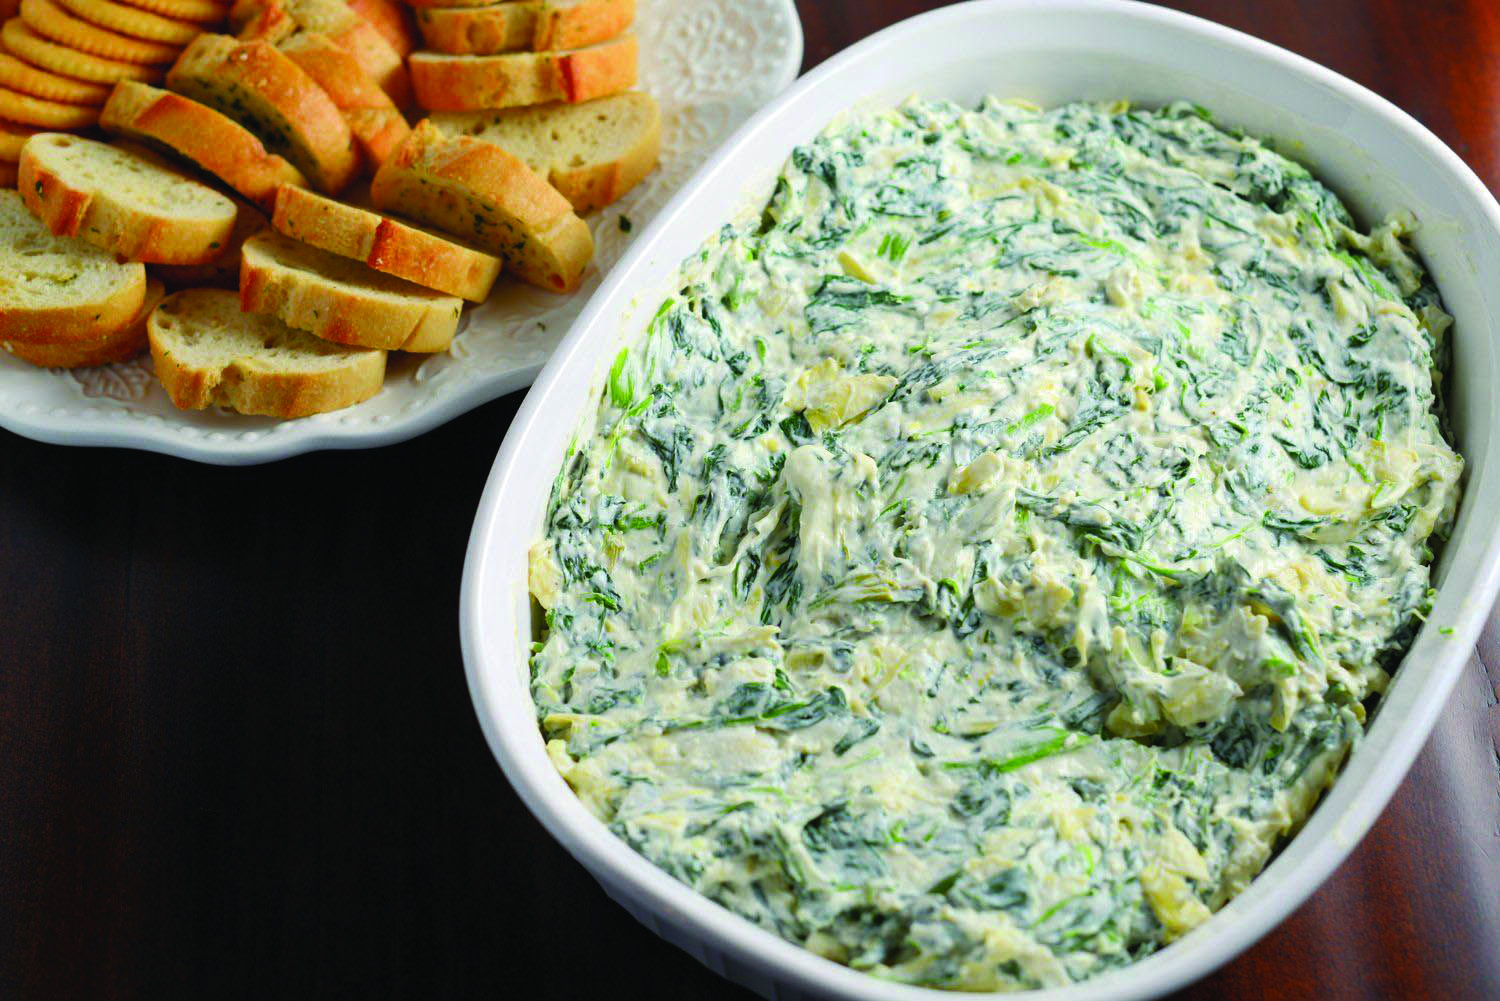 Delish Kroger Spinach Artichoke Dip Recipe Shows And Experts